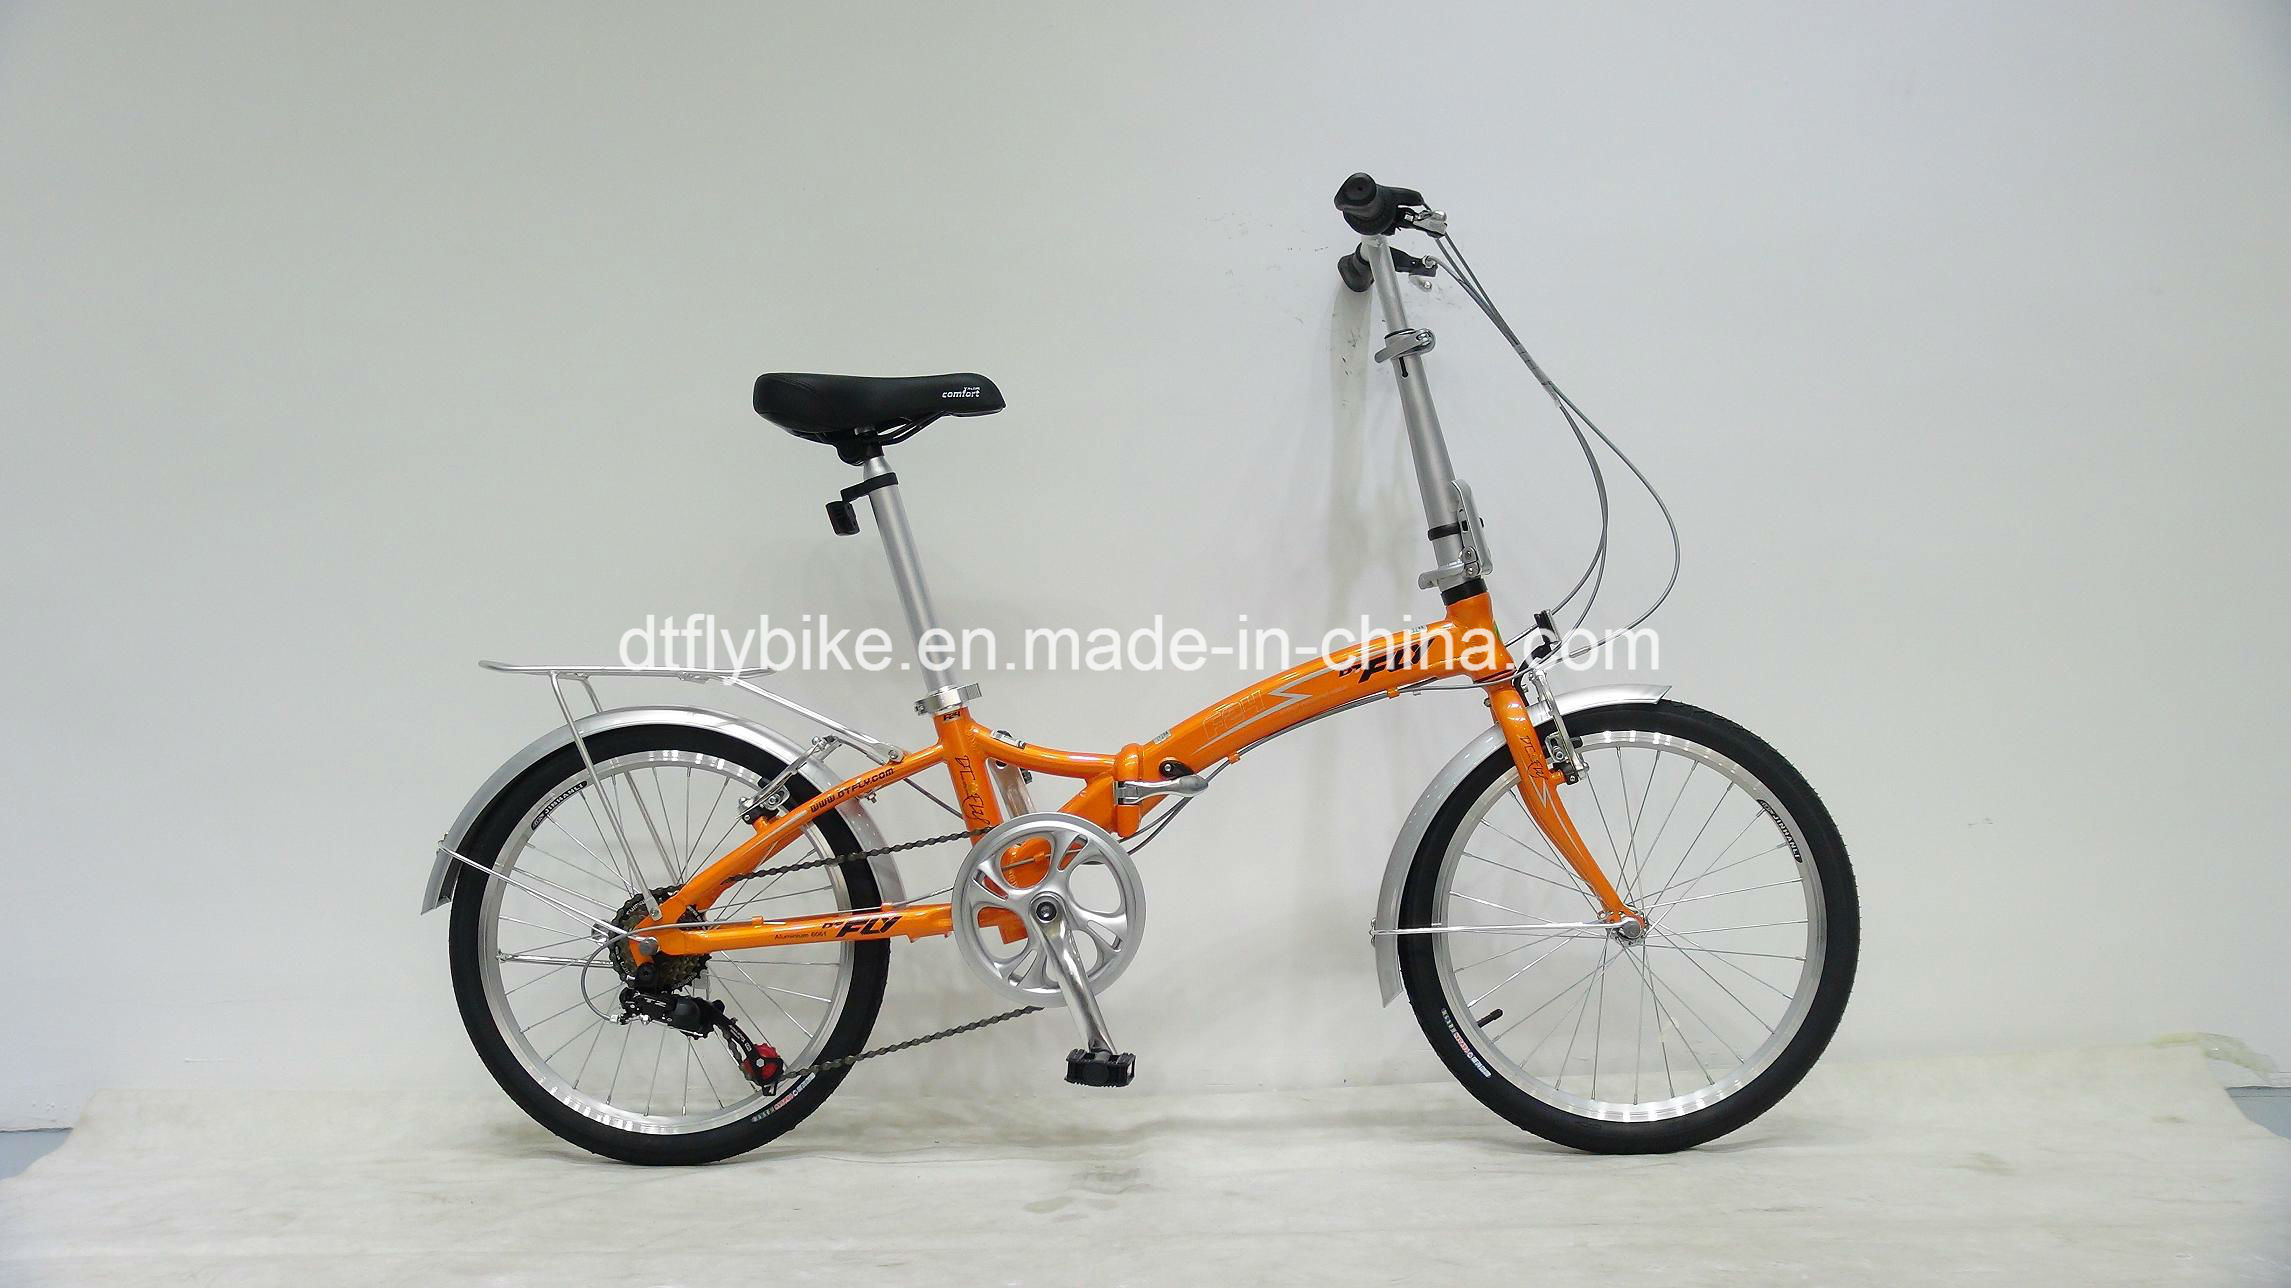 20inch Alloy Frame Folding Bike, Cheap Price Folding Bike,